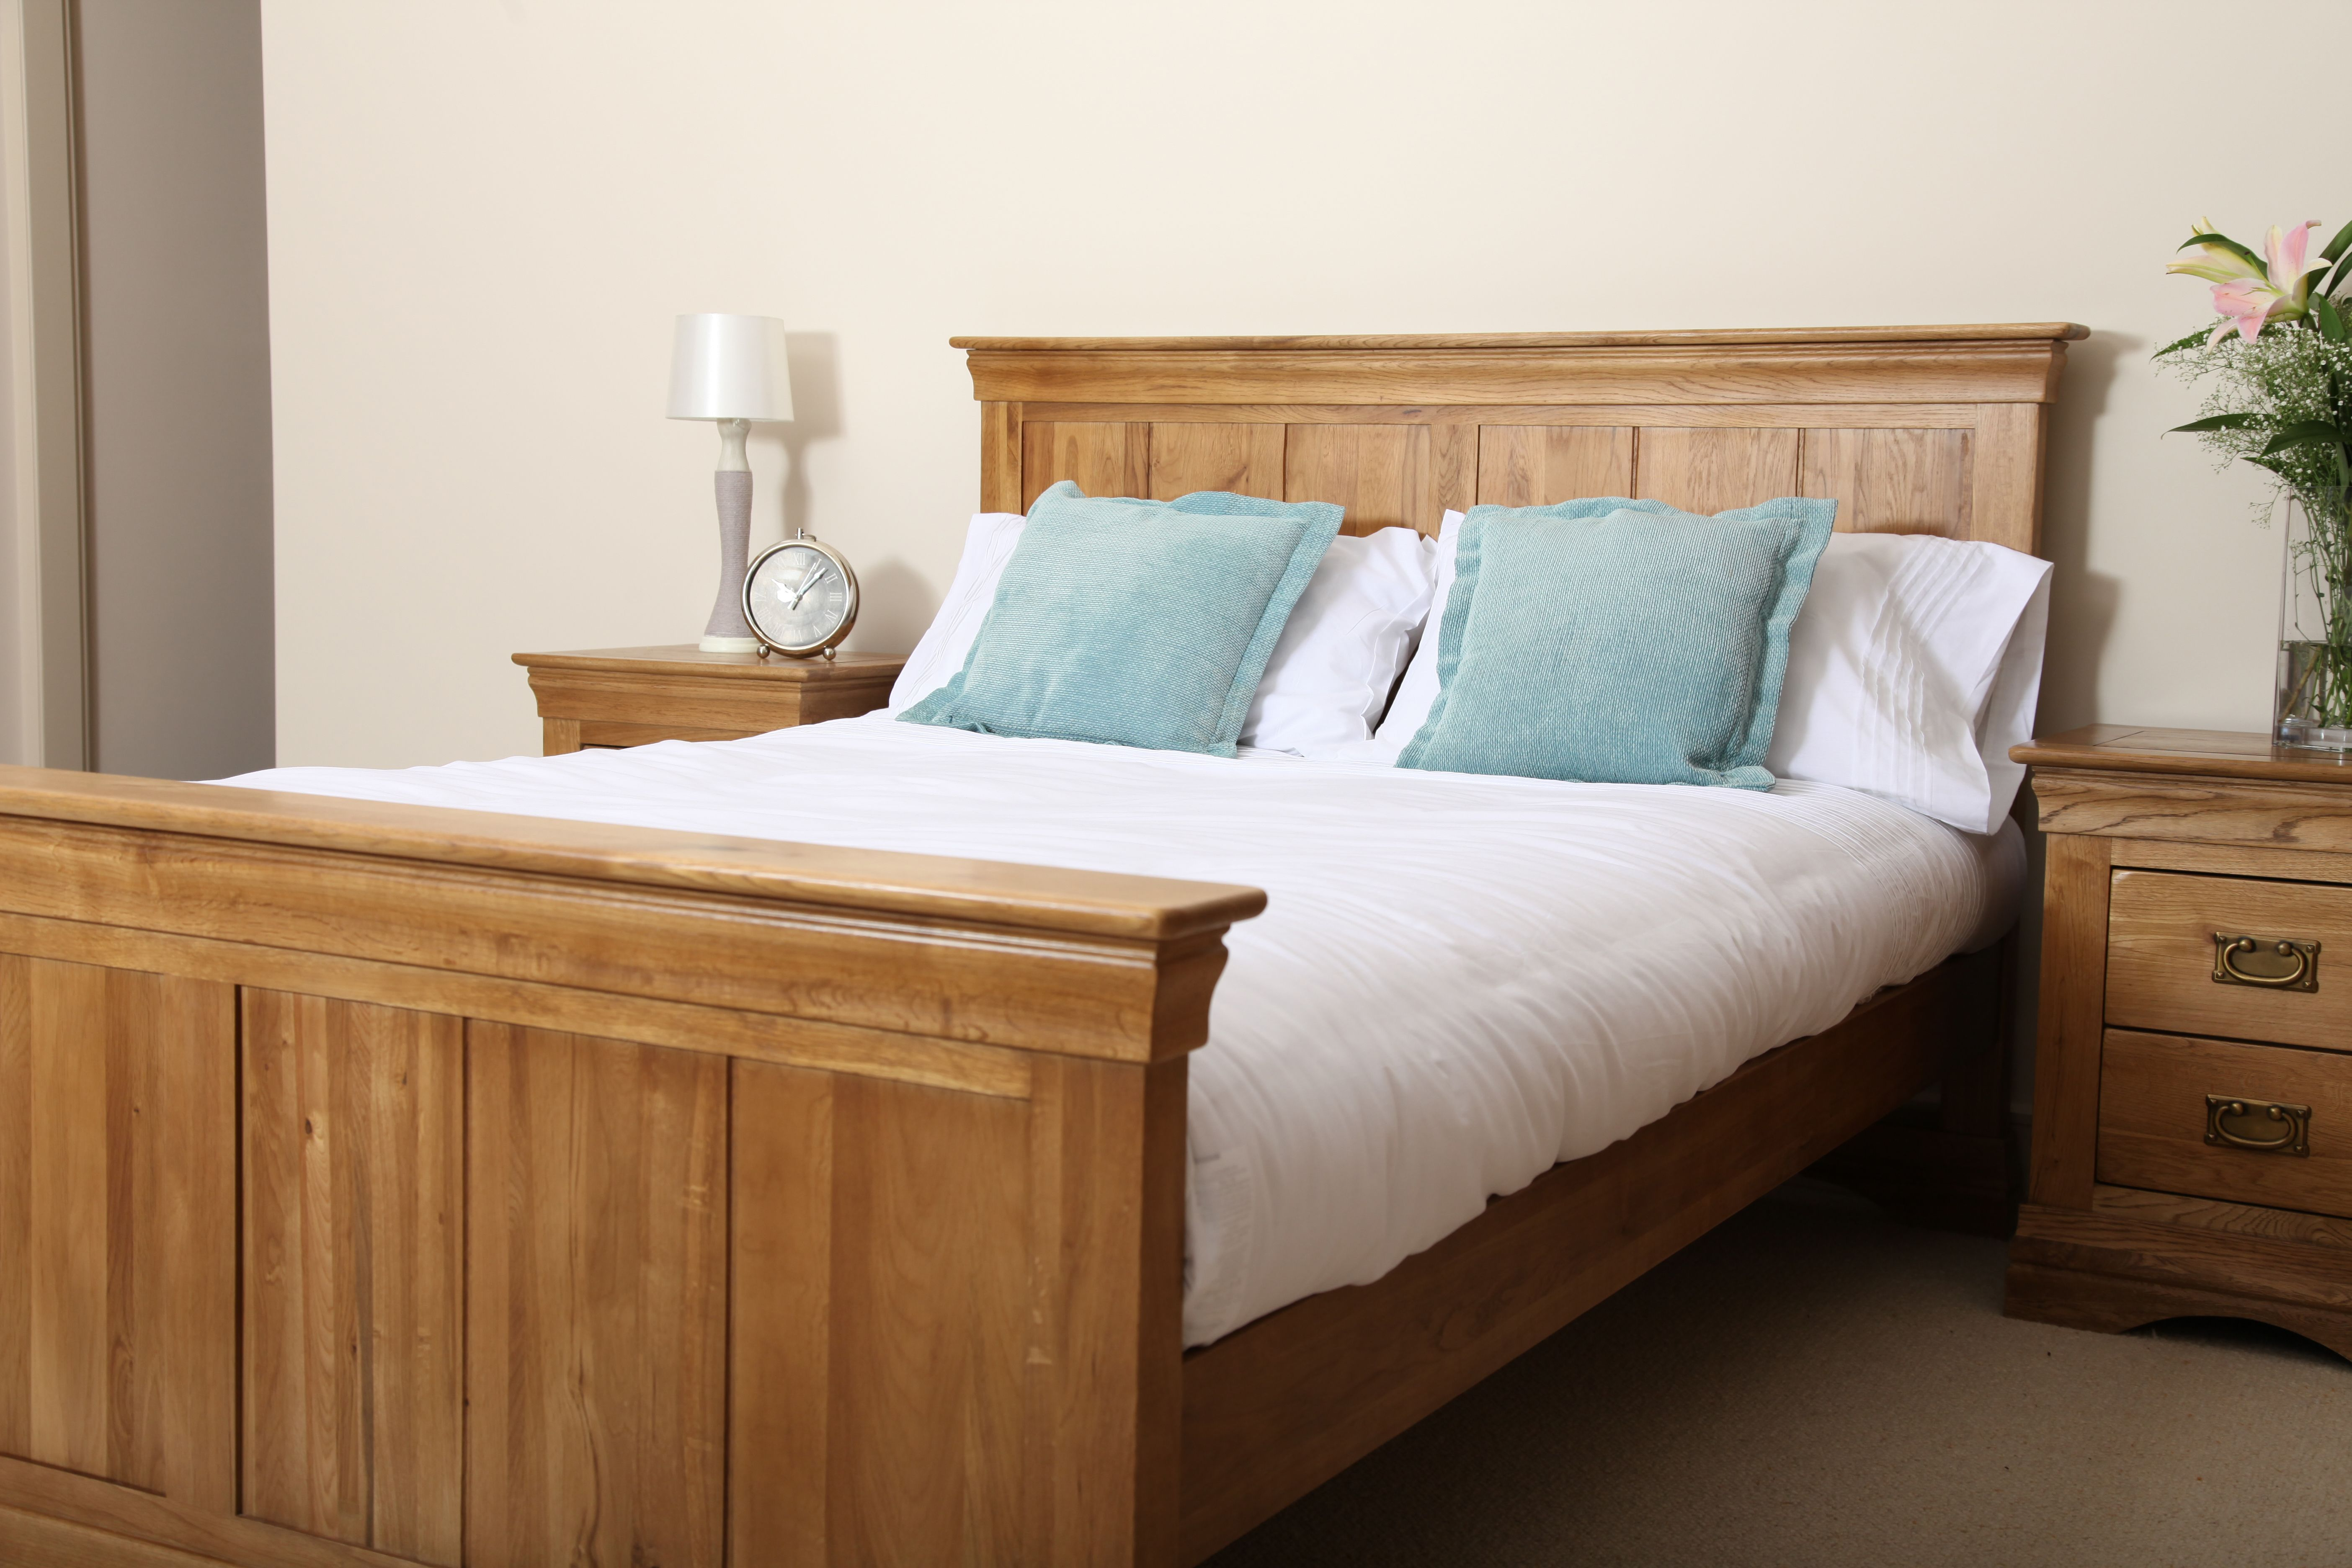 French Farmhouse Solid Oak Bedroom Furniture Oak Furniture Land Oak Bedroom Furniture Solid Oak Bedroom Furniture Furniture